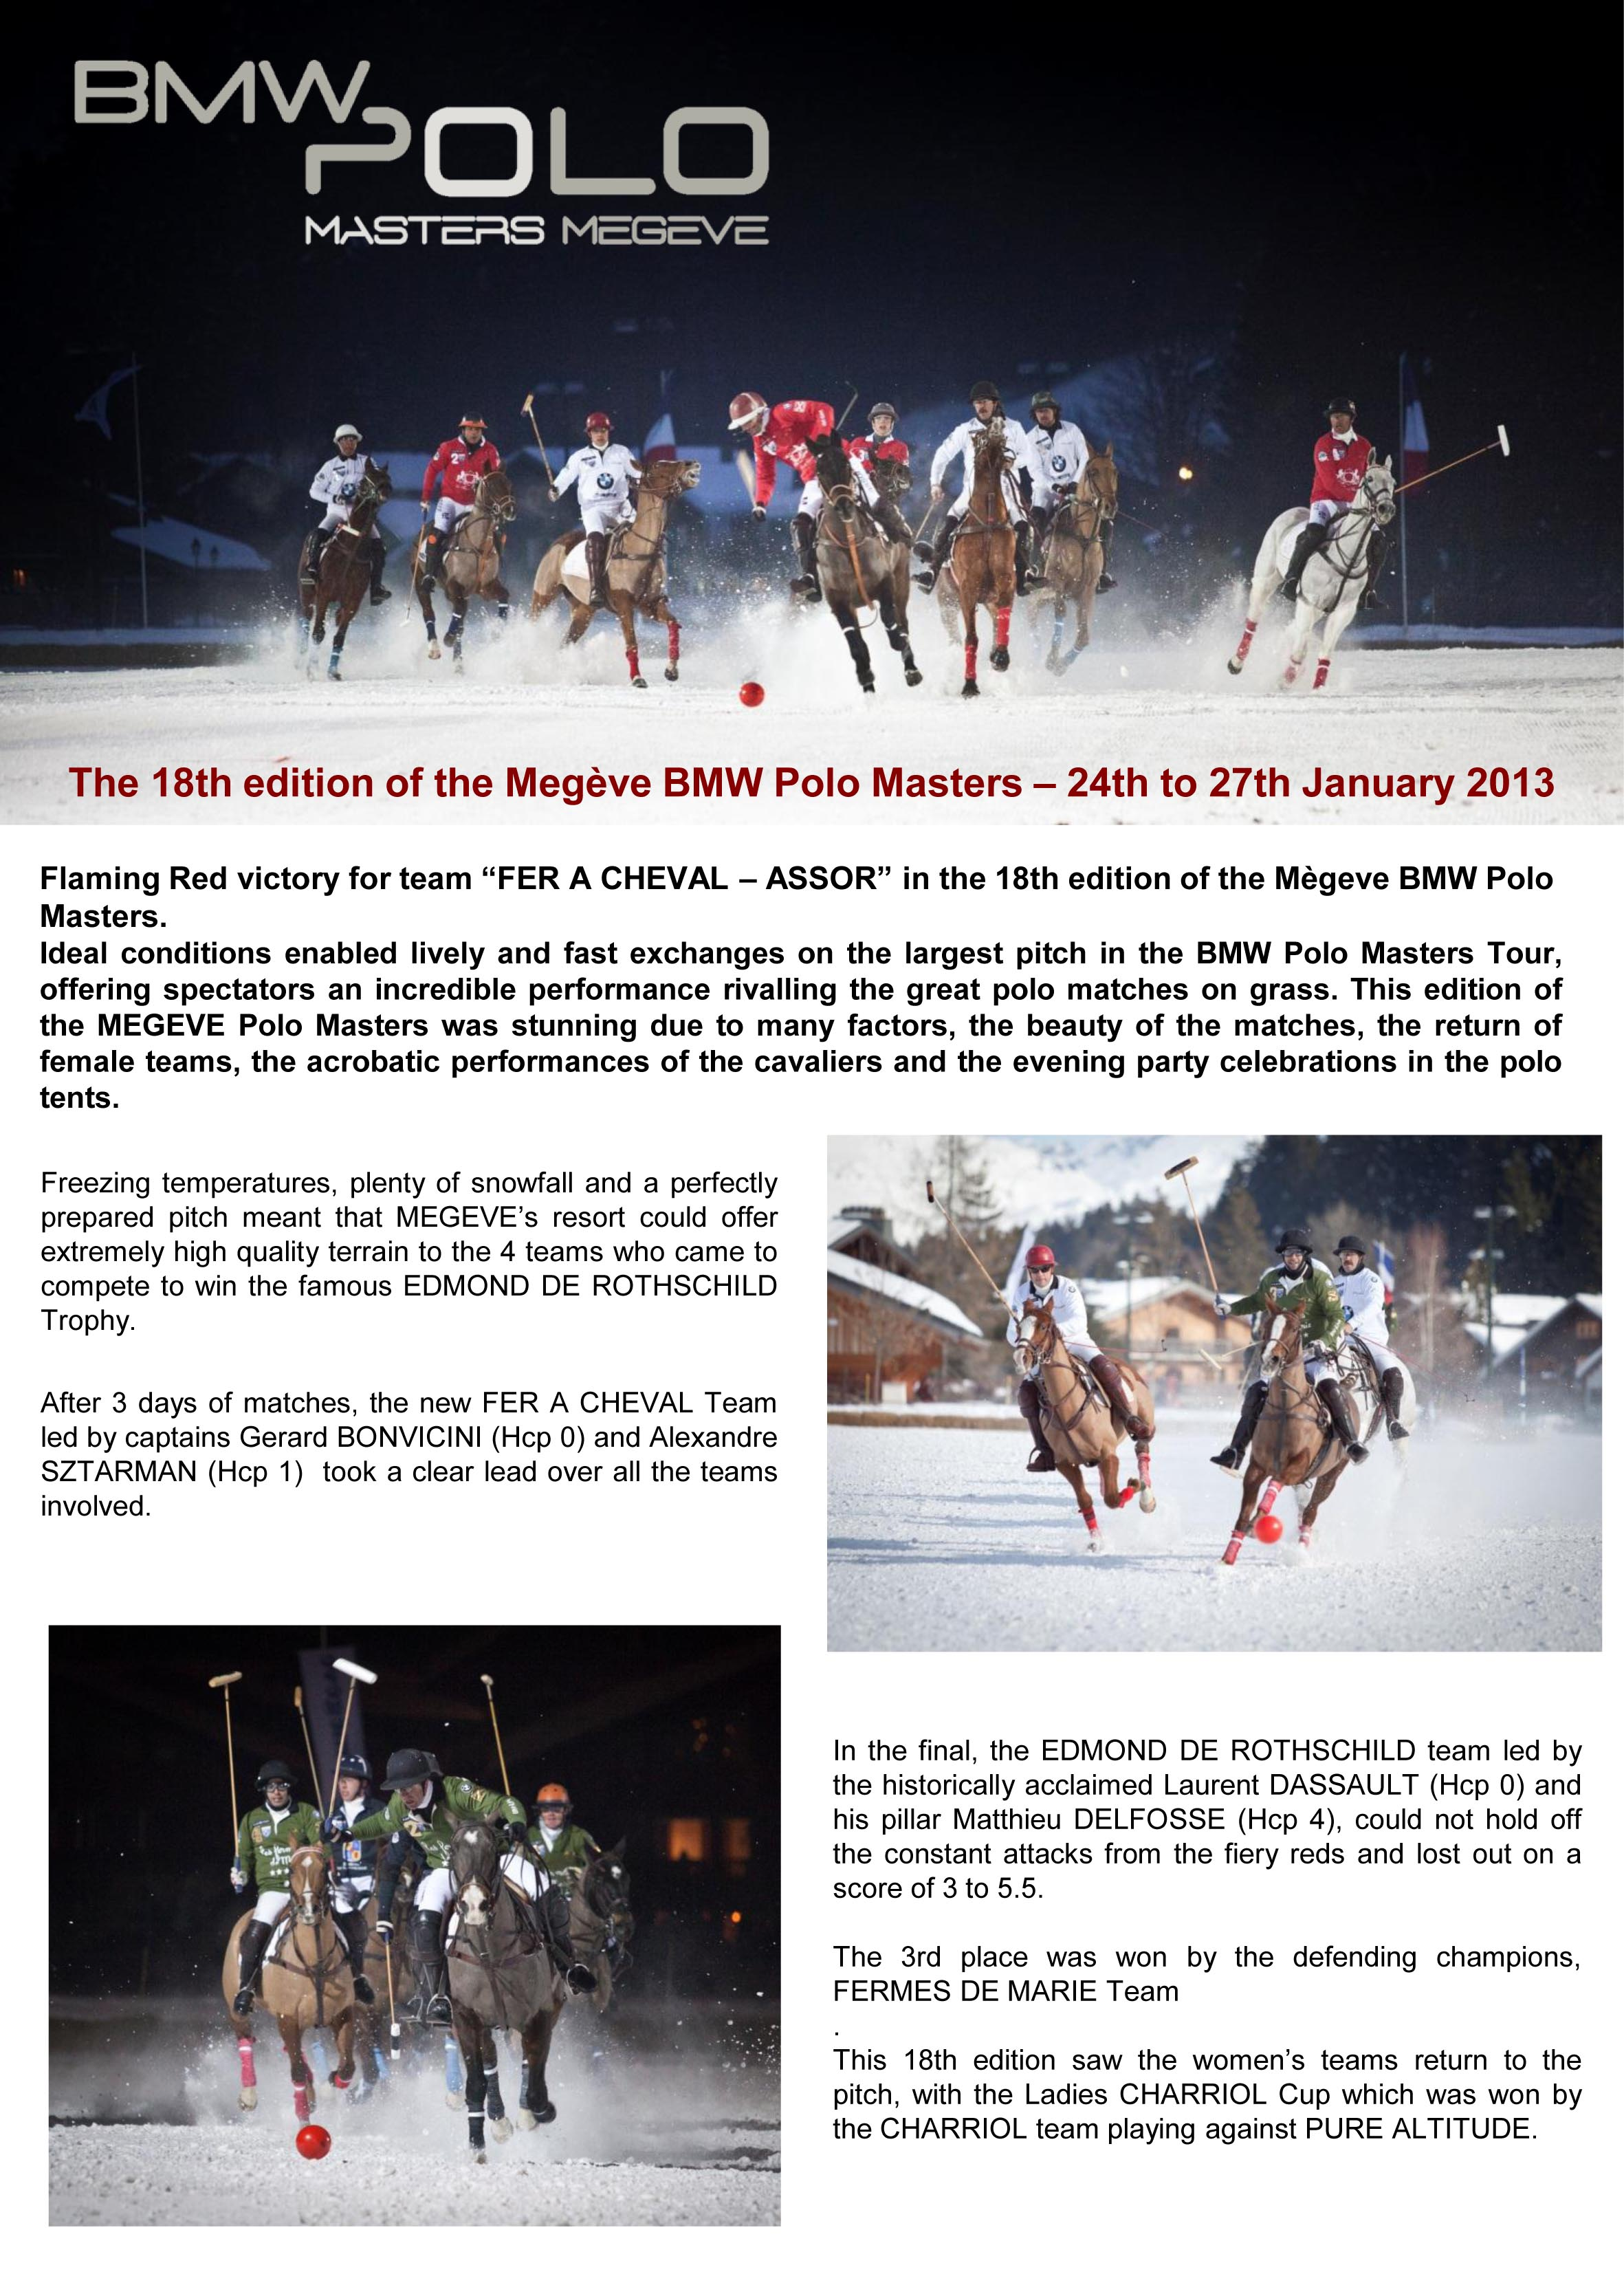 18th edition of the Megève BMW Polo Masters - 24th to 27th January 2013